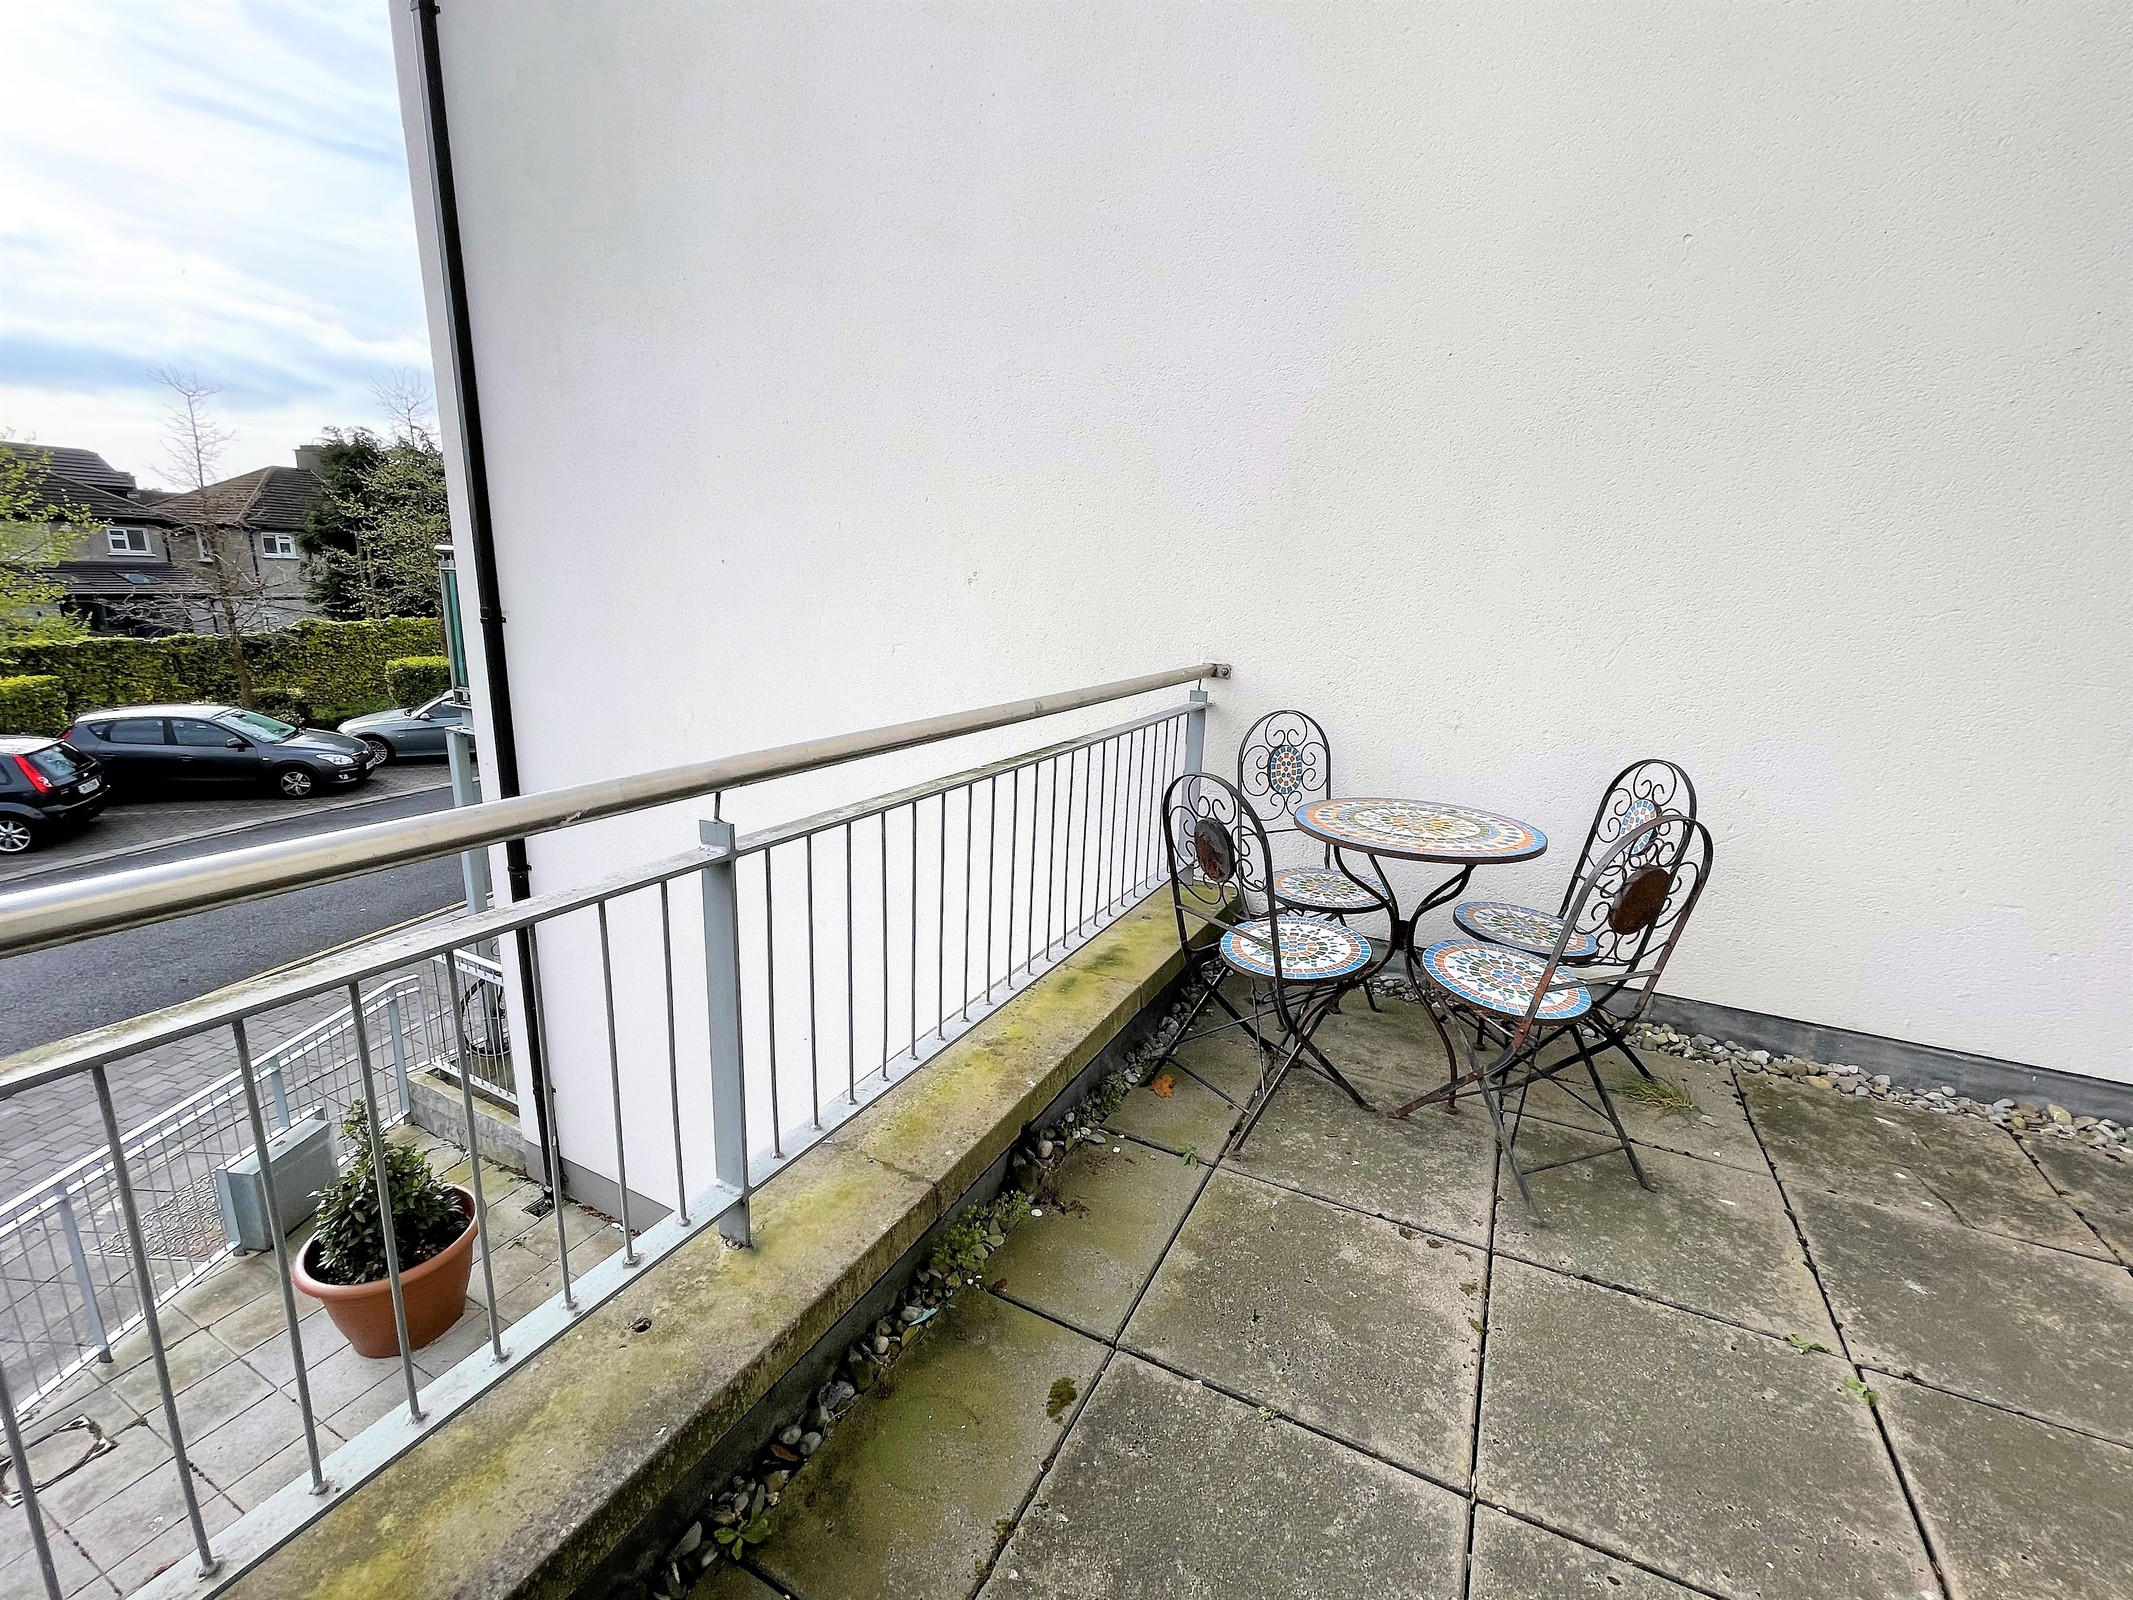 Apartment 40, Block A, The Timber Mill, Artane, Dublin 5